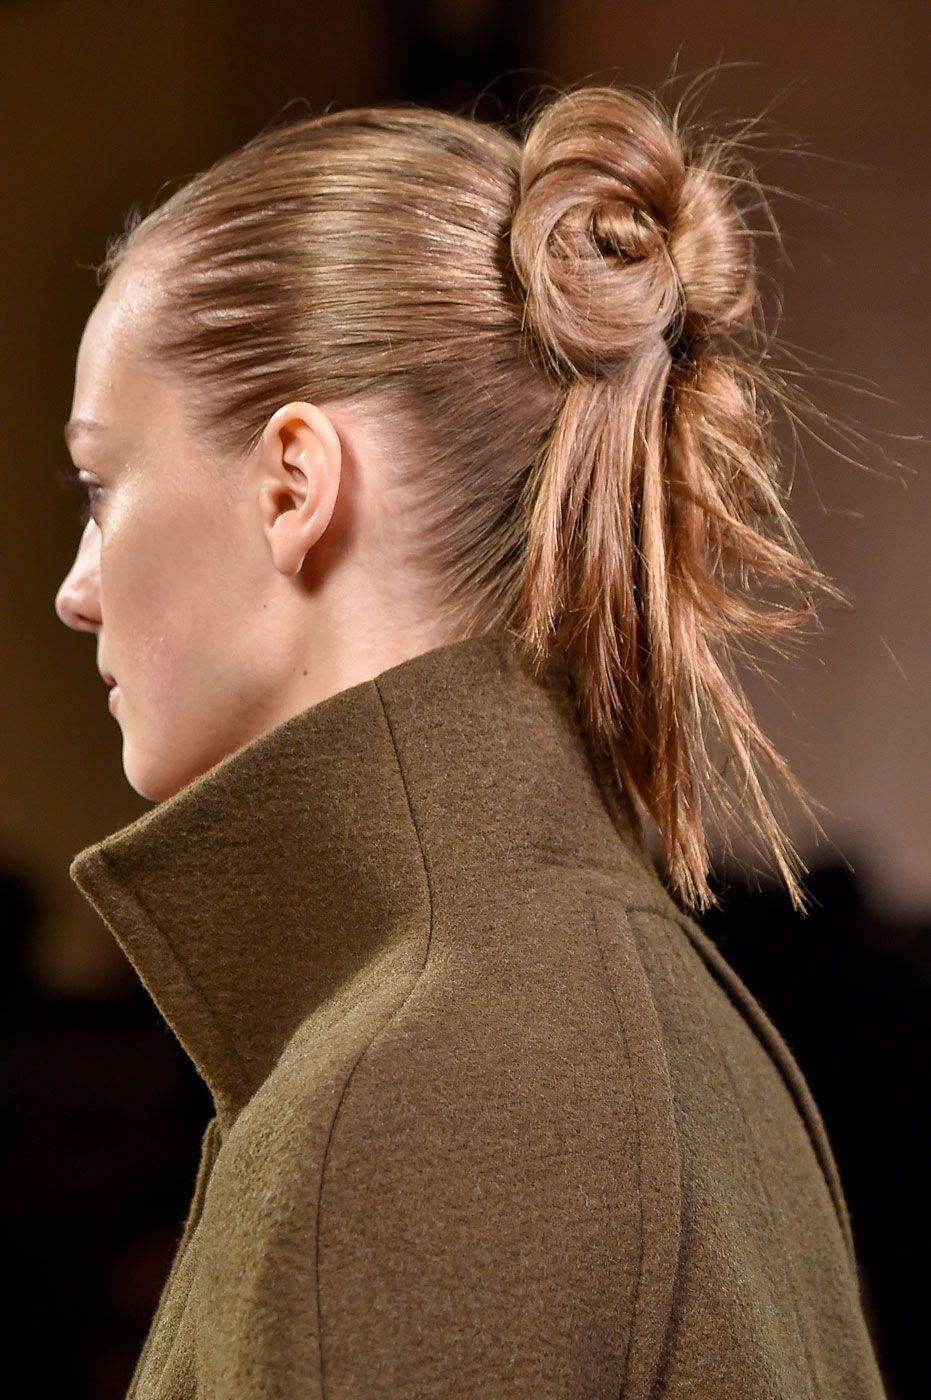 Redken ambassador Guido Palau styled Victoria Beckham's models with cool duel-textured knots, sleek at the top and matte at the bottom. The makeup by Pat McGrath was all about the heavily underlined eyes. - Cosmopolitan.co.uk